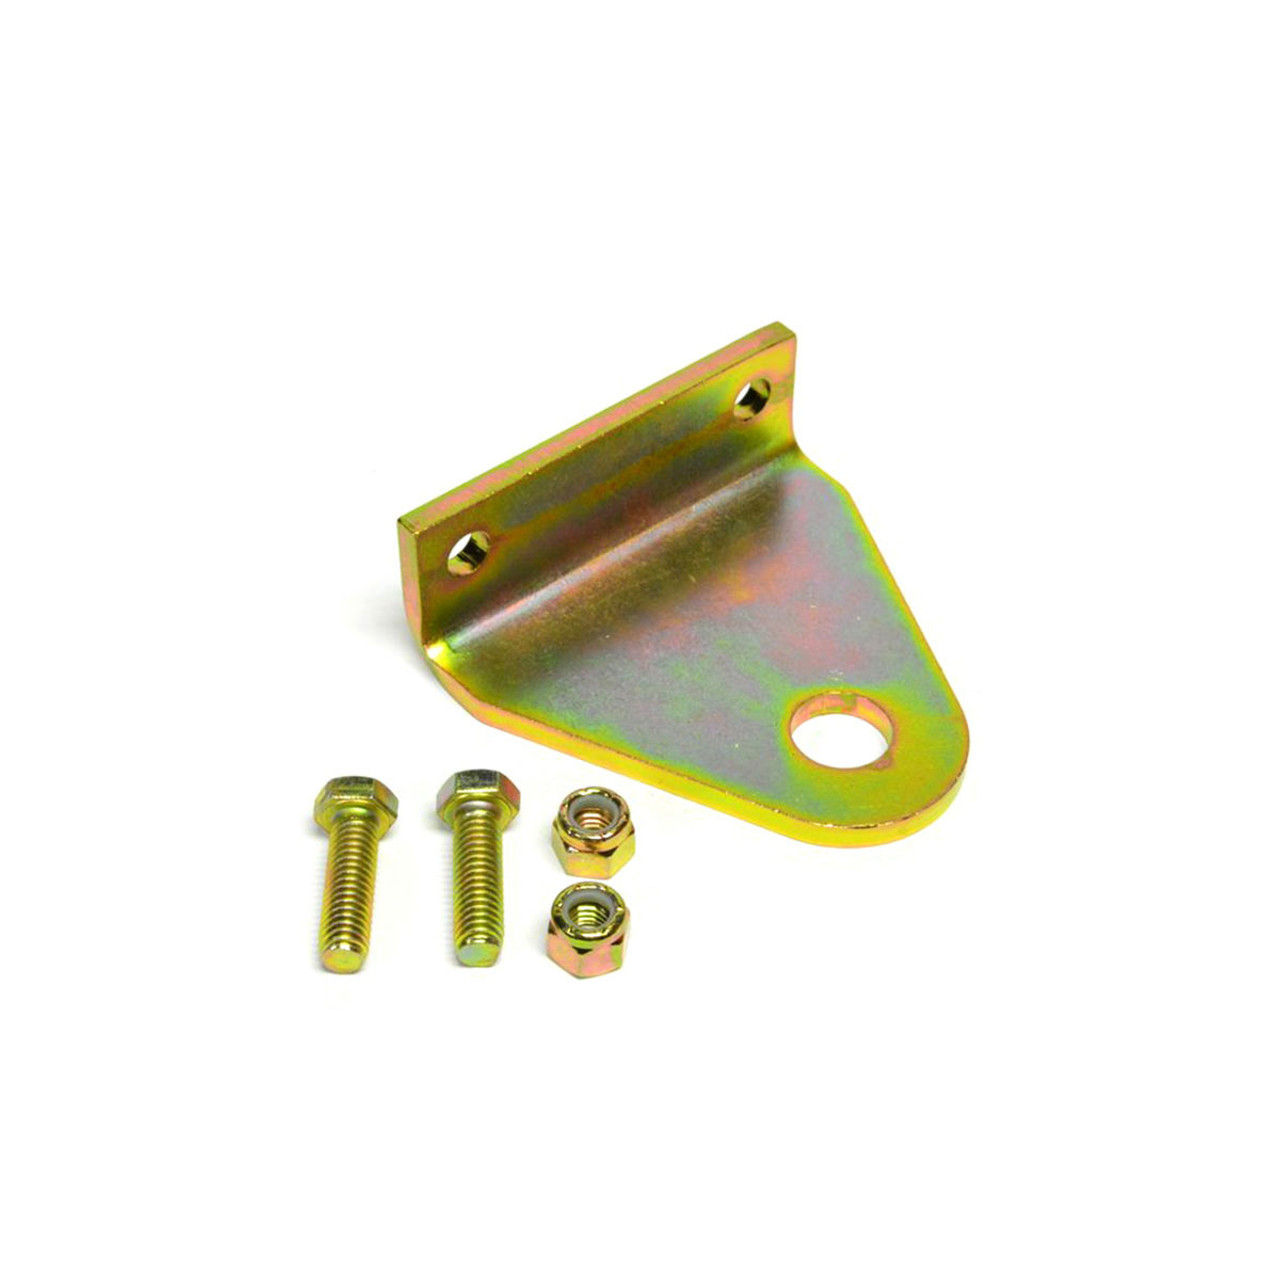 Scag 9242 Trailer Hitch for Sabre & Turf Tiger Models Image